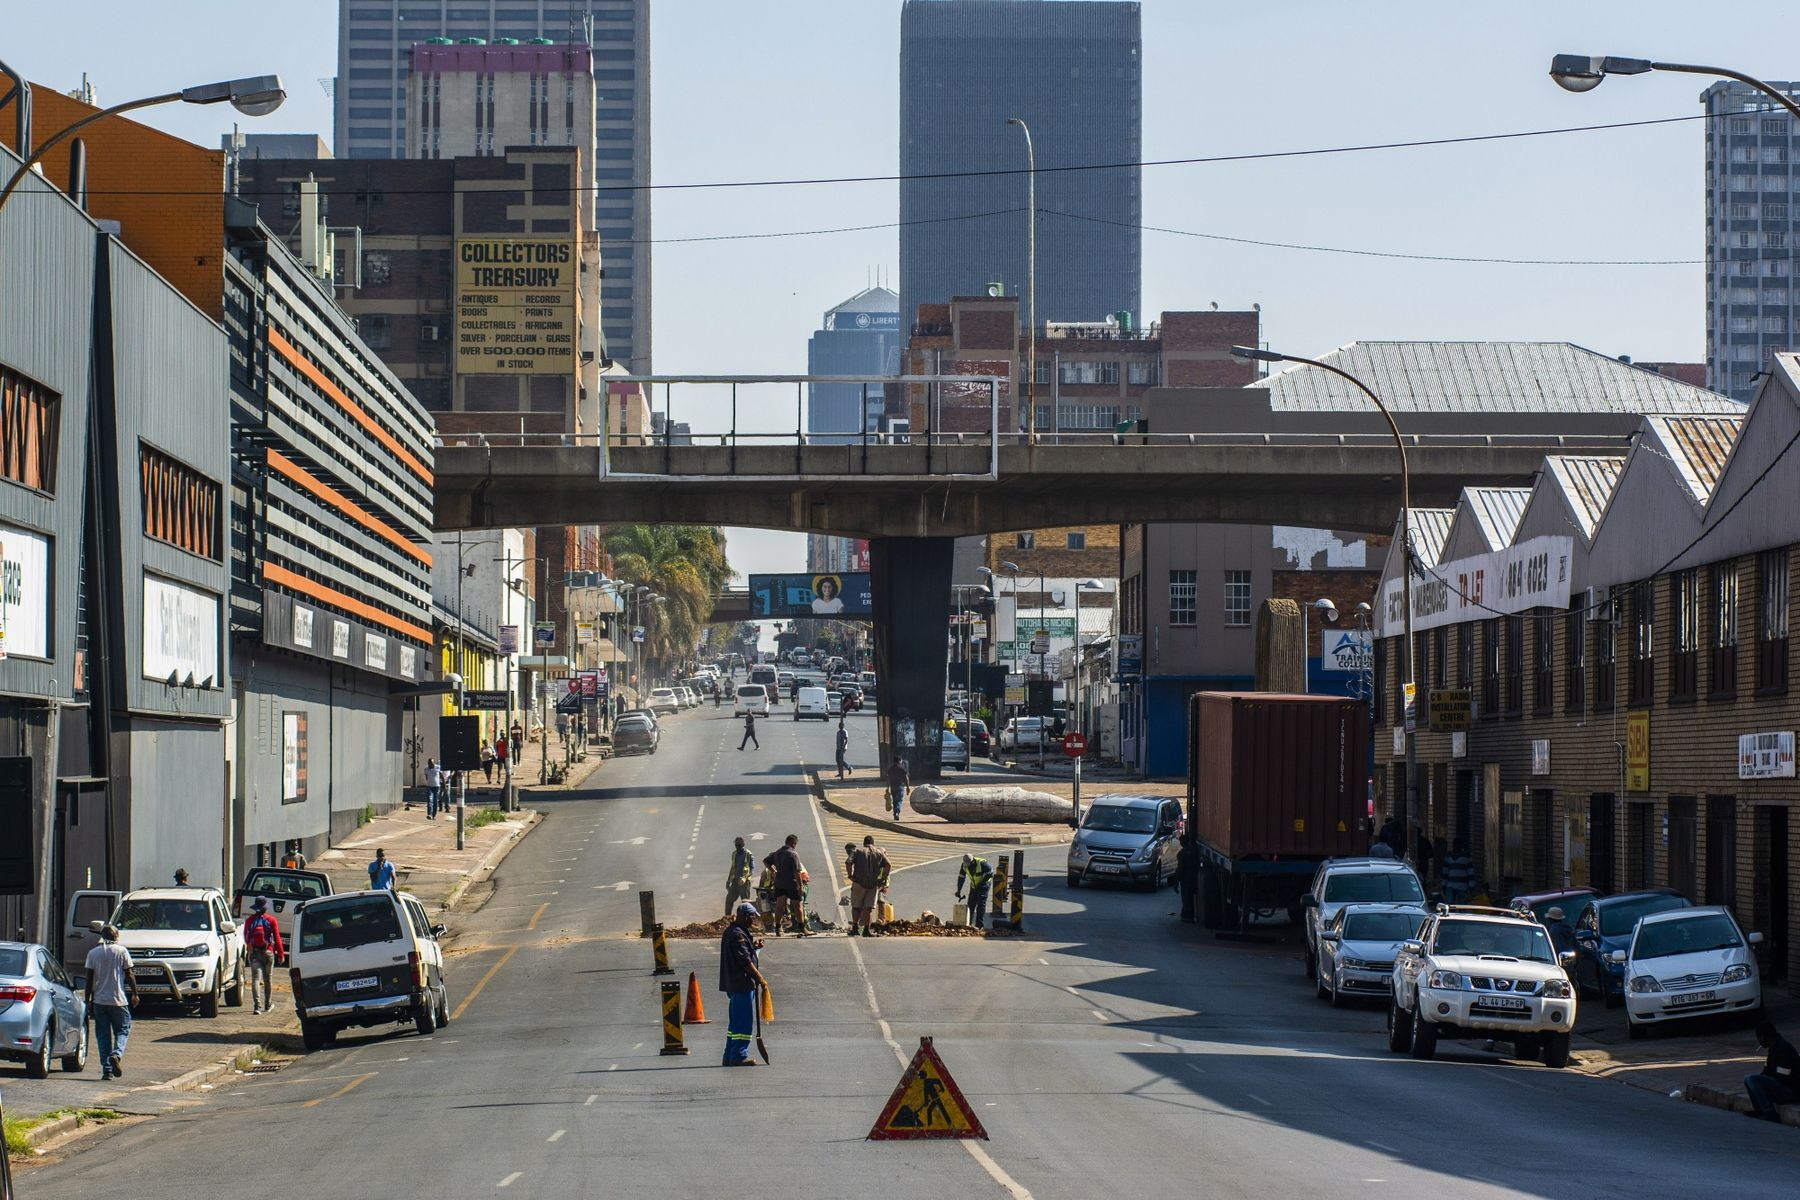 Municipal workers labour at a roadworks site in the Central Business District (CBD) of Johannesburg.